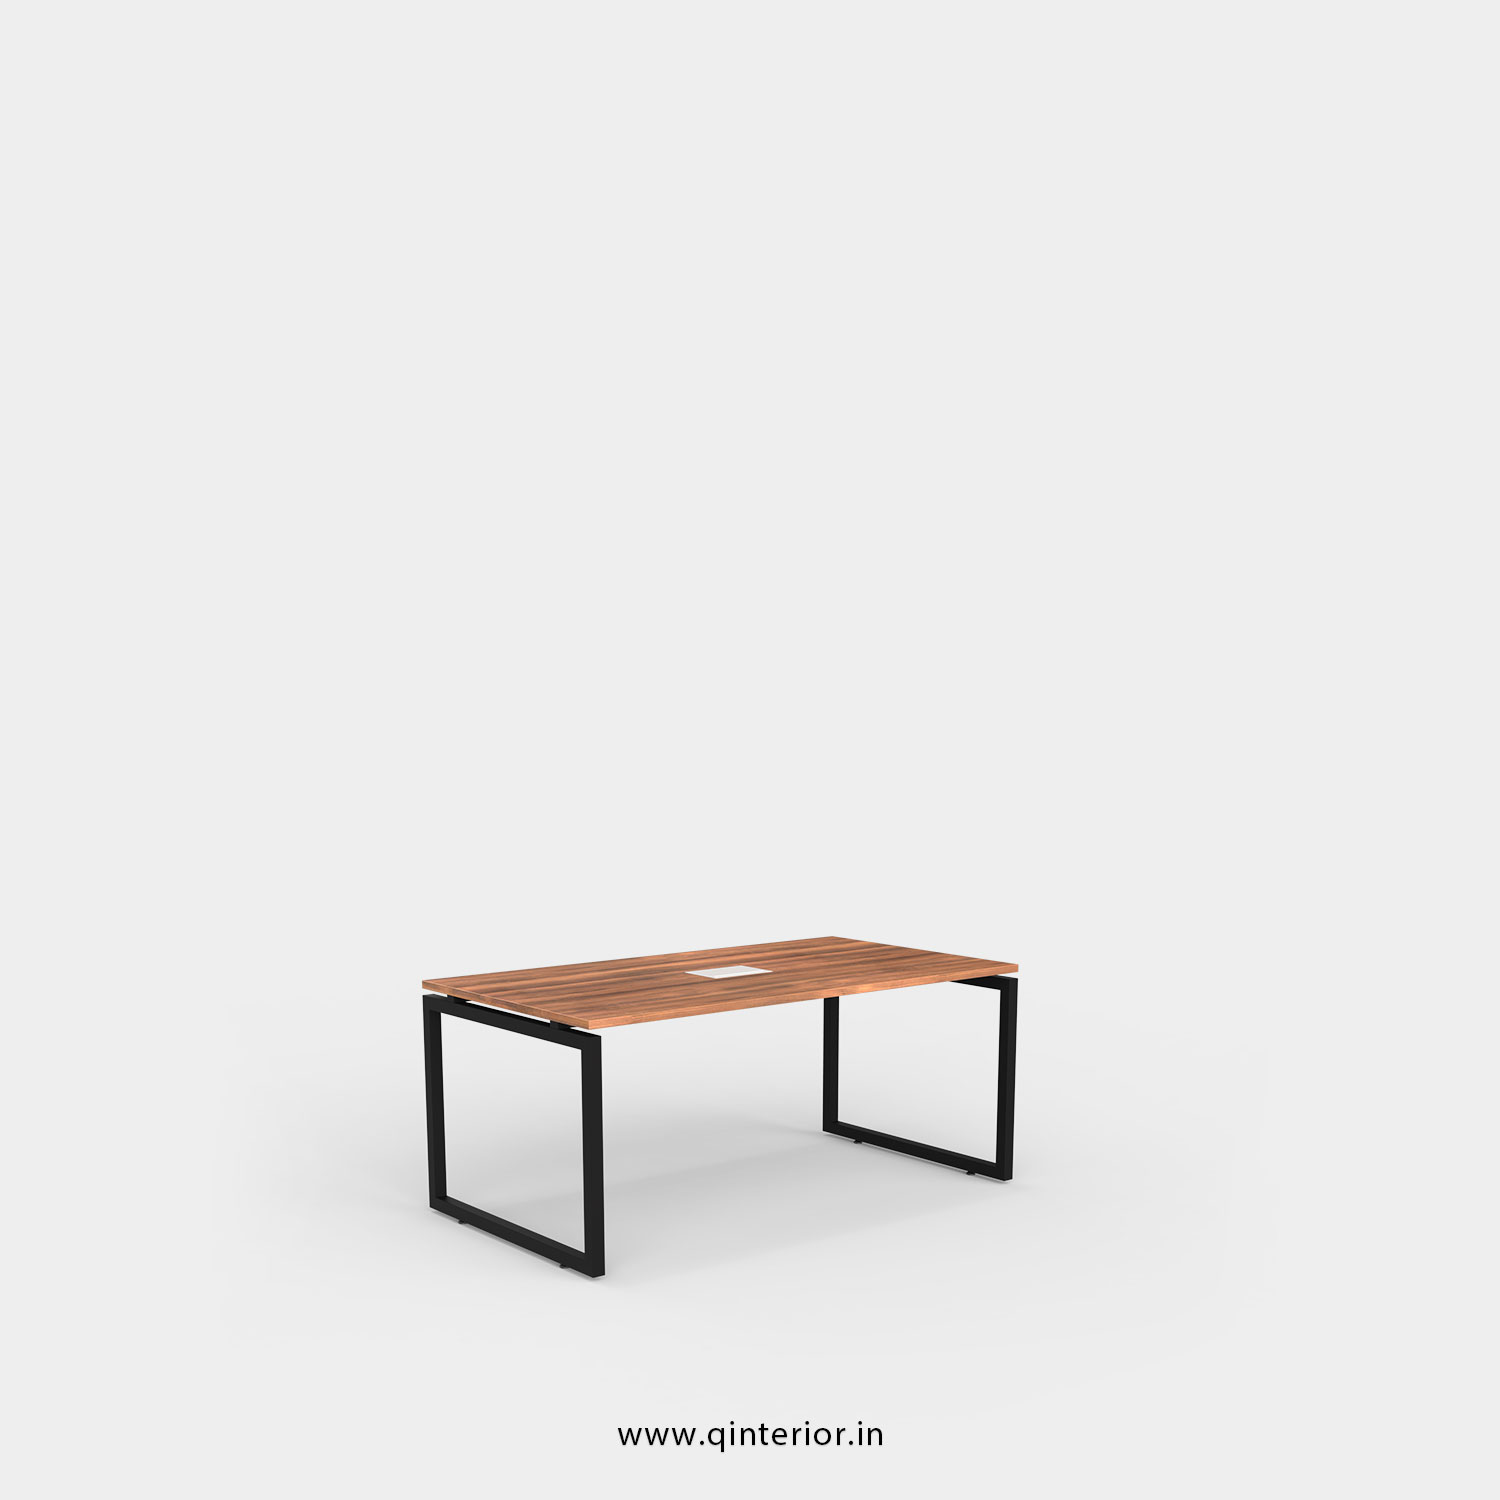 Aaron Meeting Table in Teak Finish - OMT001 C3